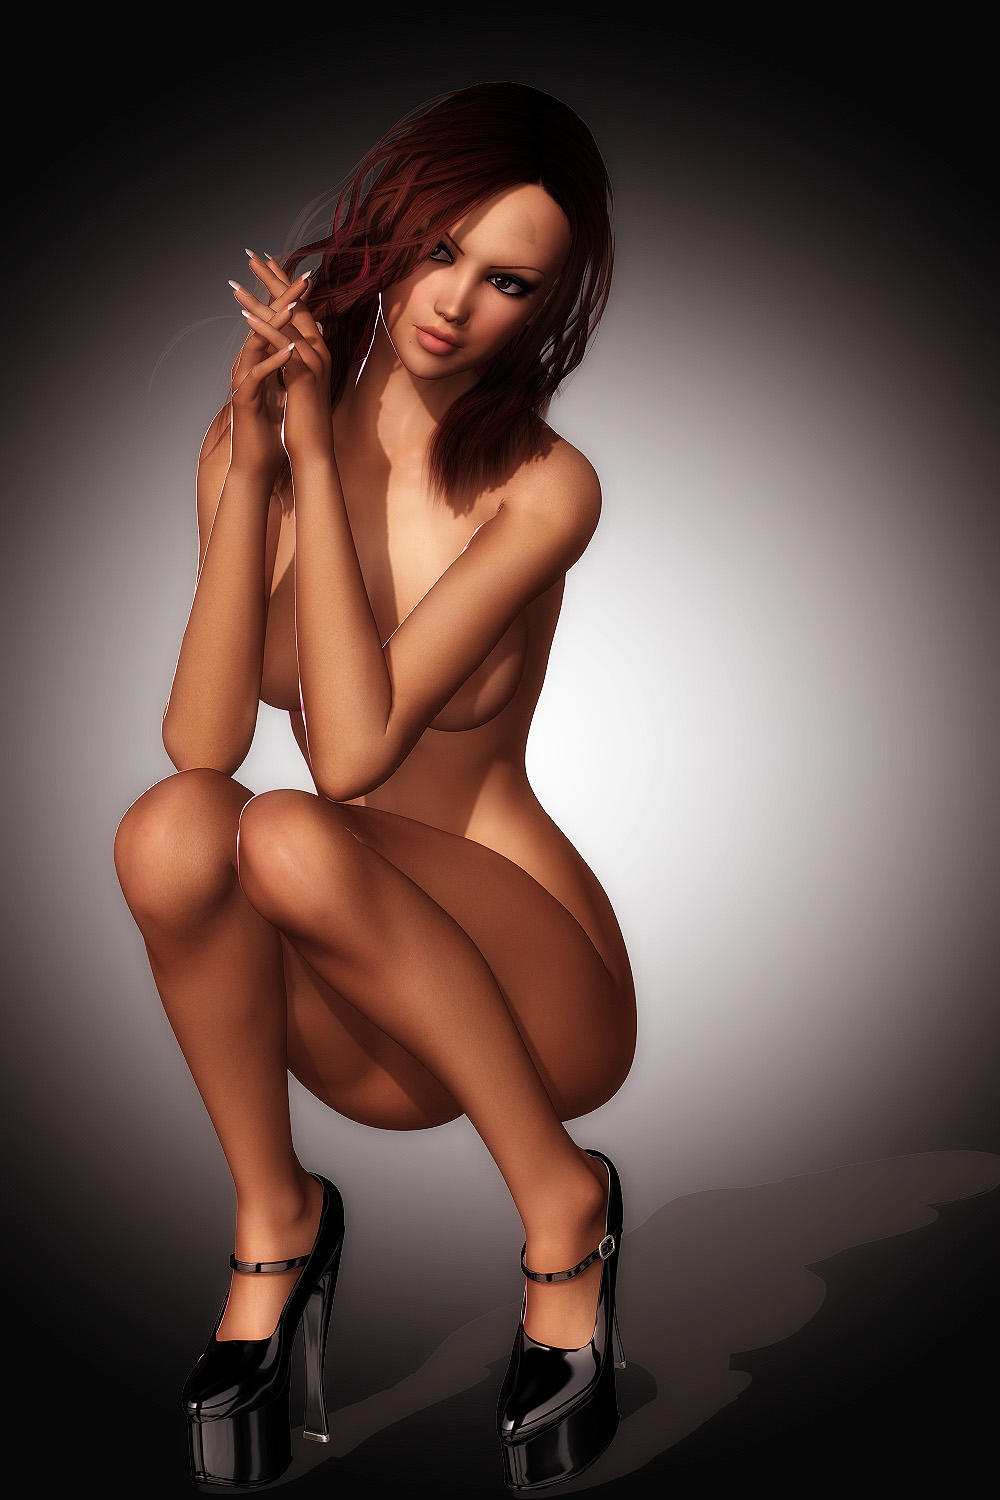 Hot sexy 3d animated naked girls hardcore photo